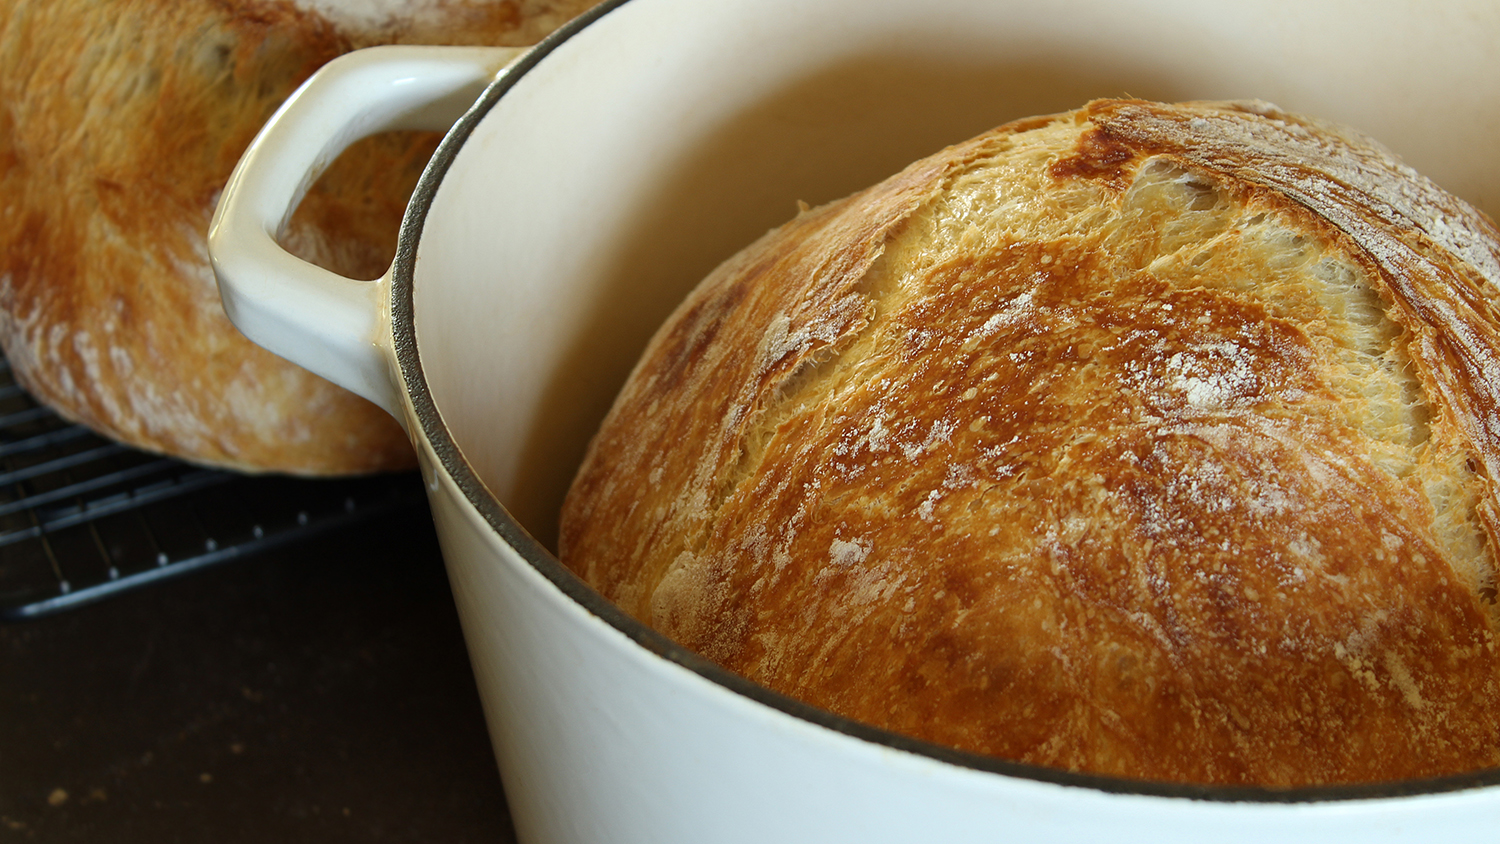 The Best Dutch Oven For All Your Pandemic Bread Baking